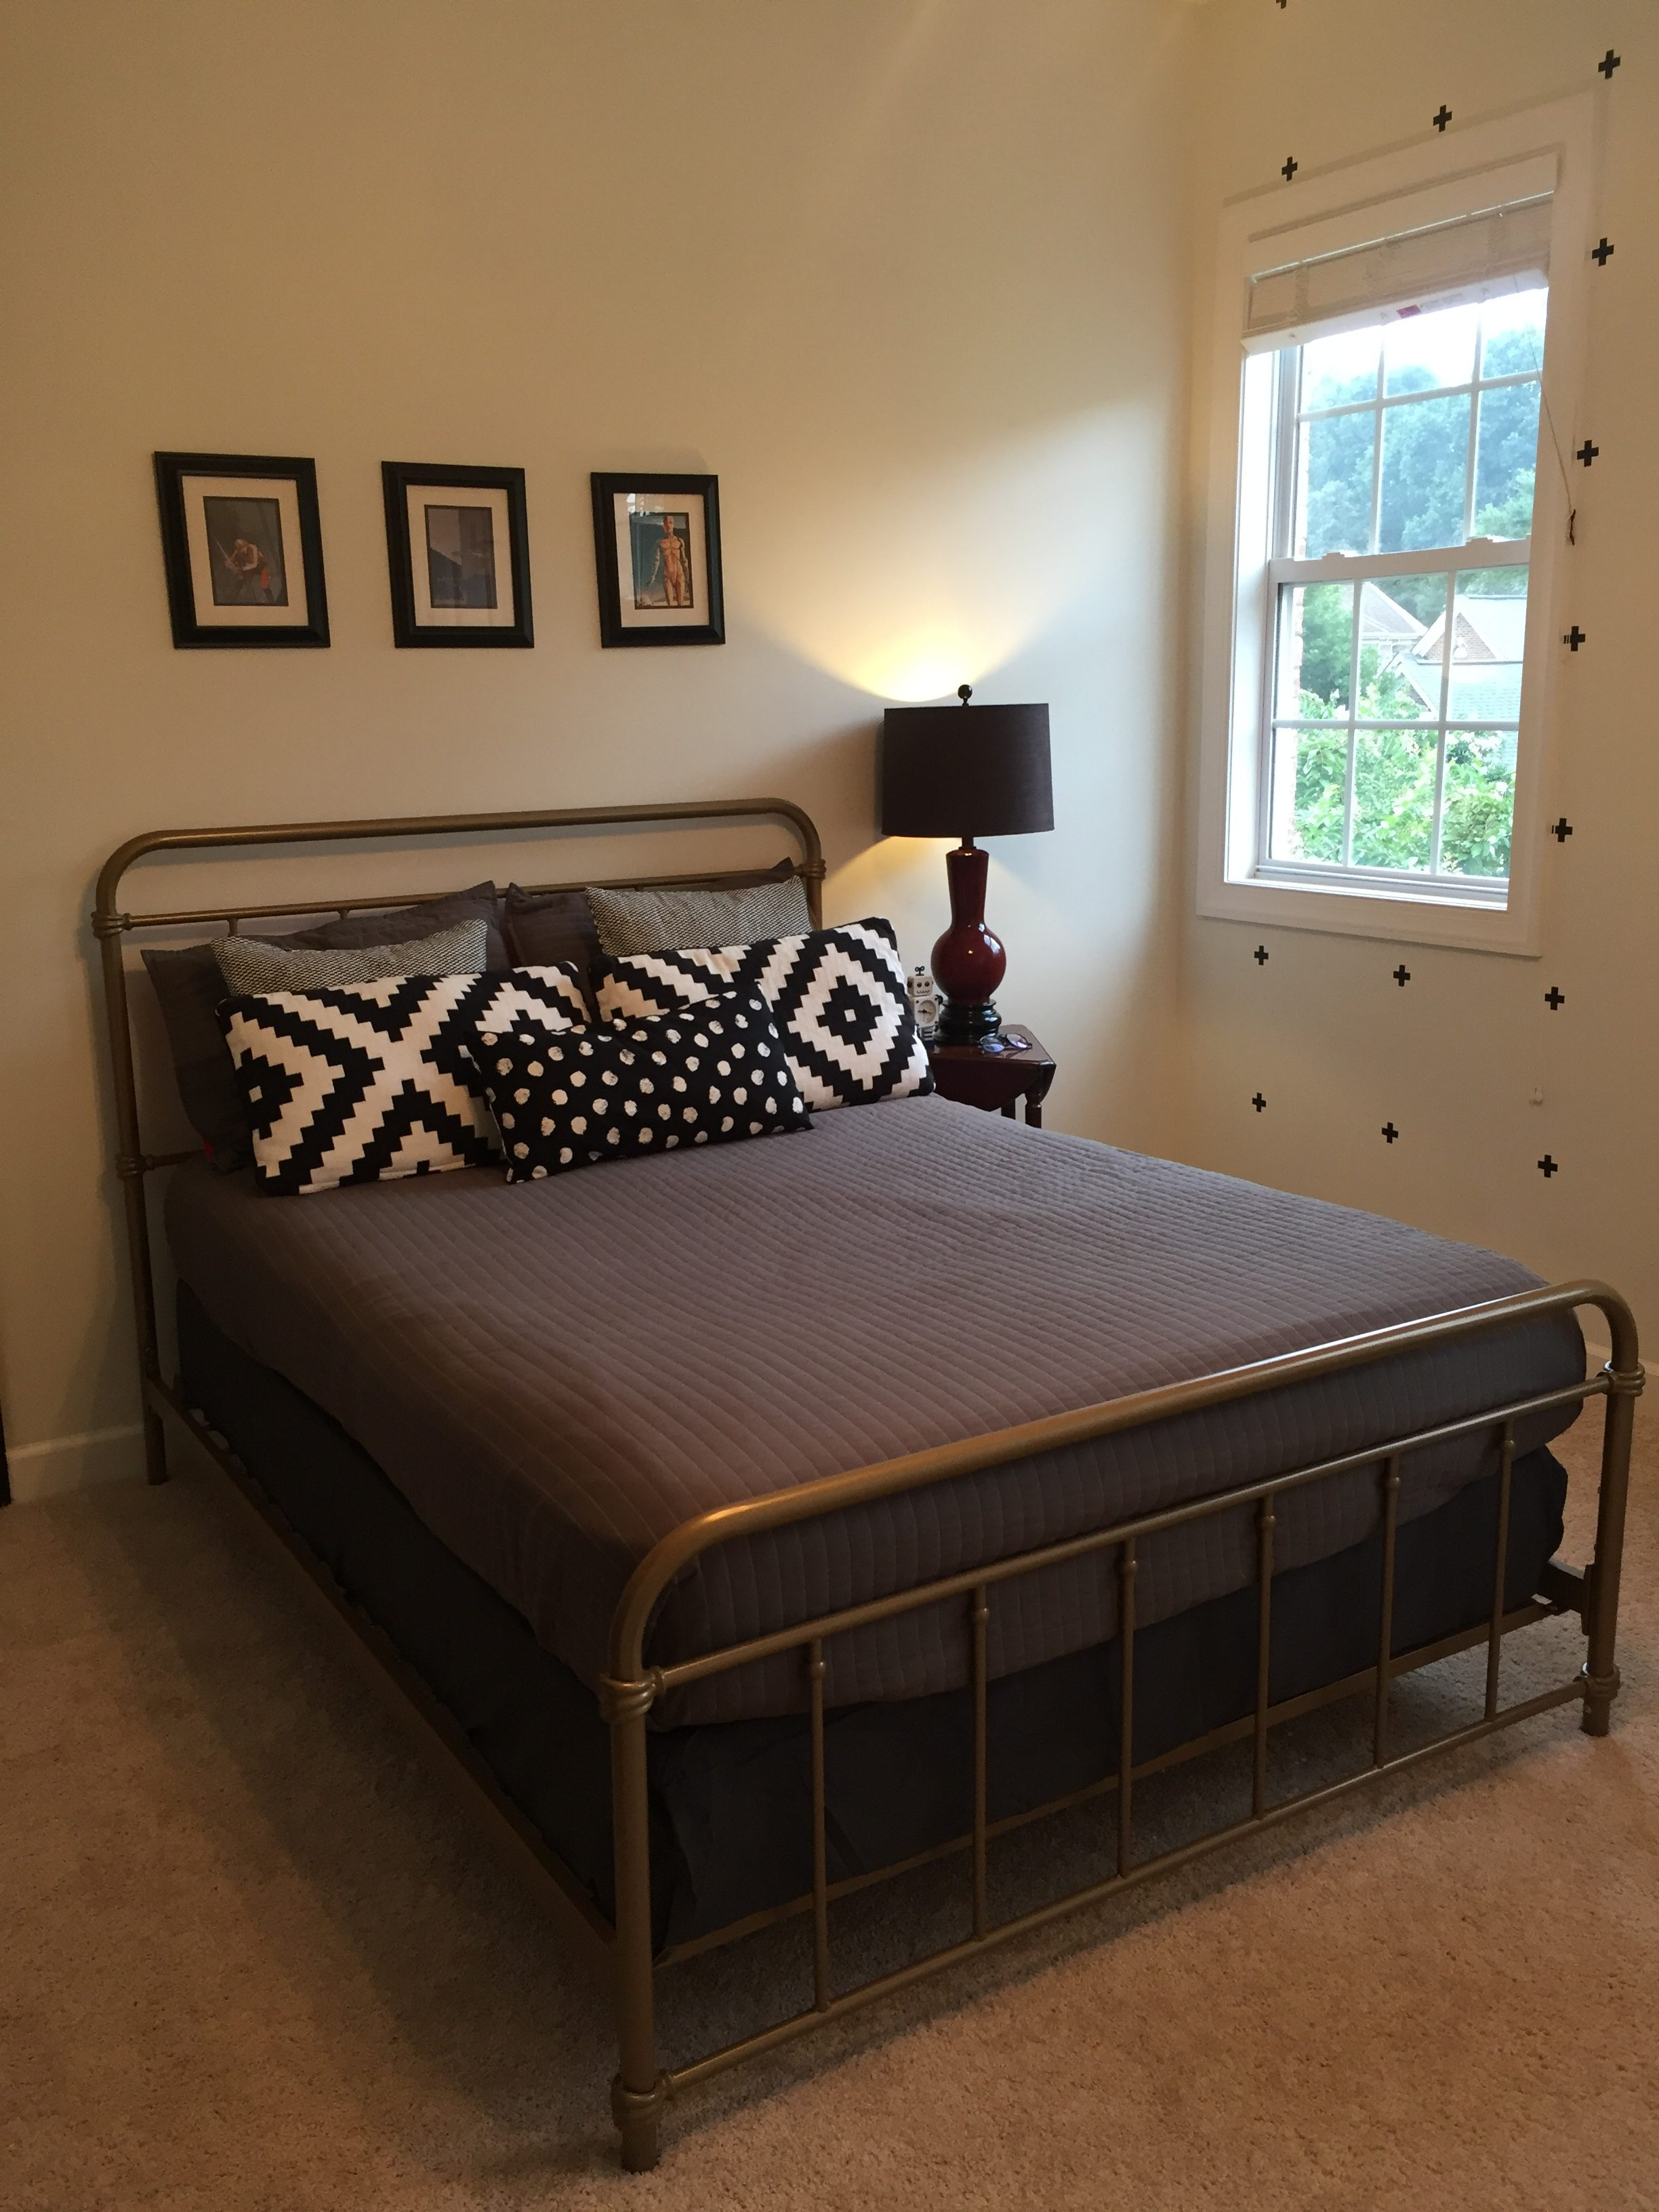 The new bed, bed linens, bedskirt, and pillows.